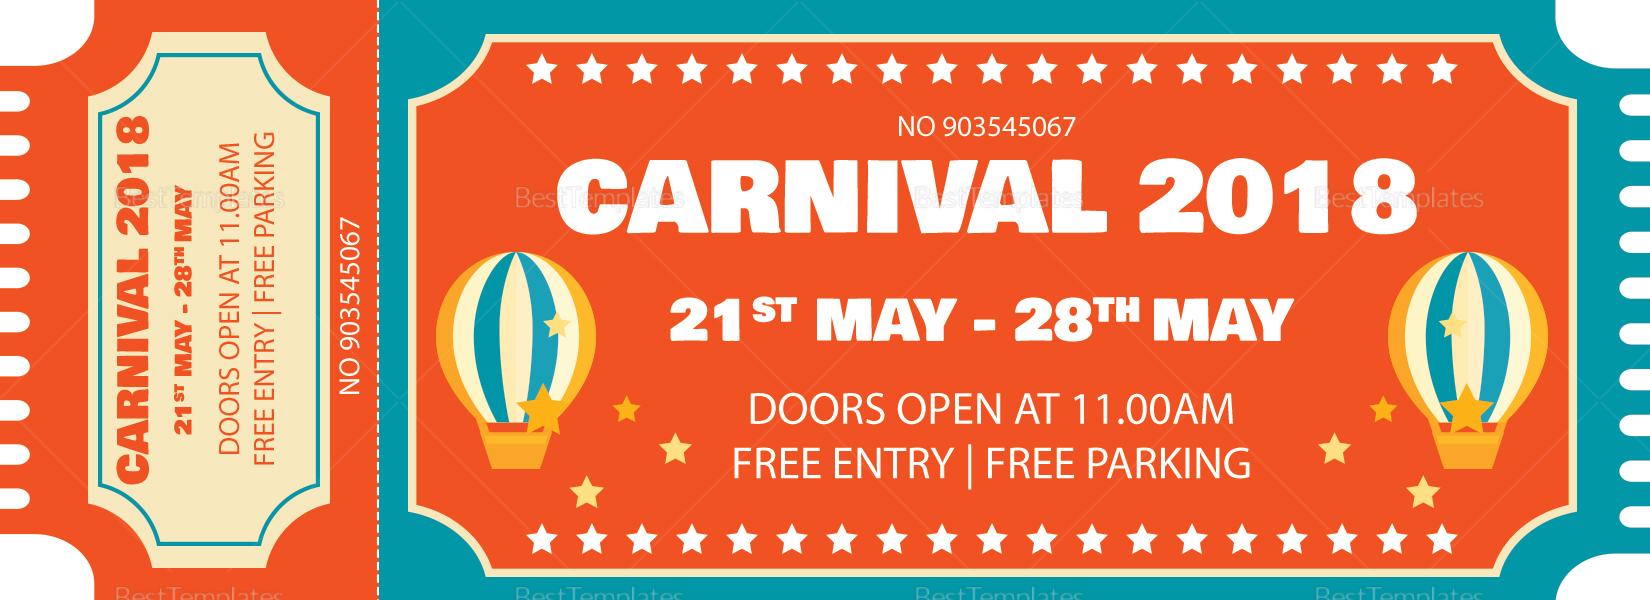 Carnival Event Ticket; Carnival Event Ticket Template  Event Ticket Template